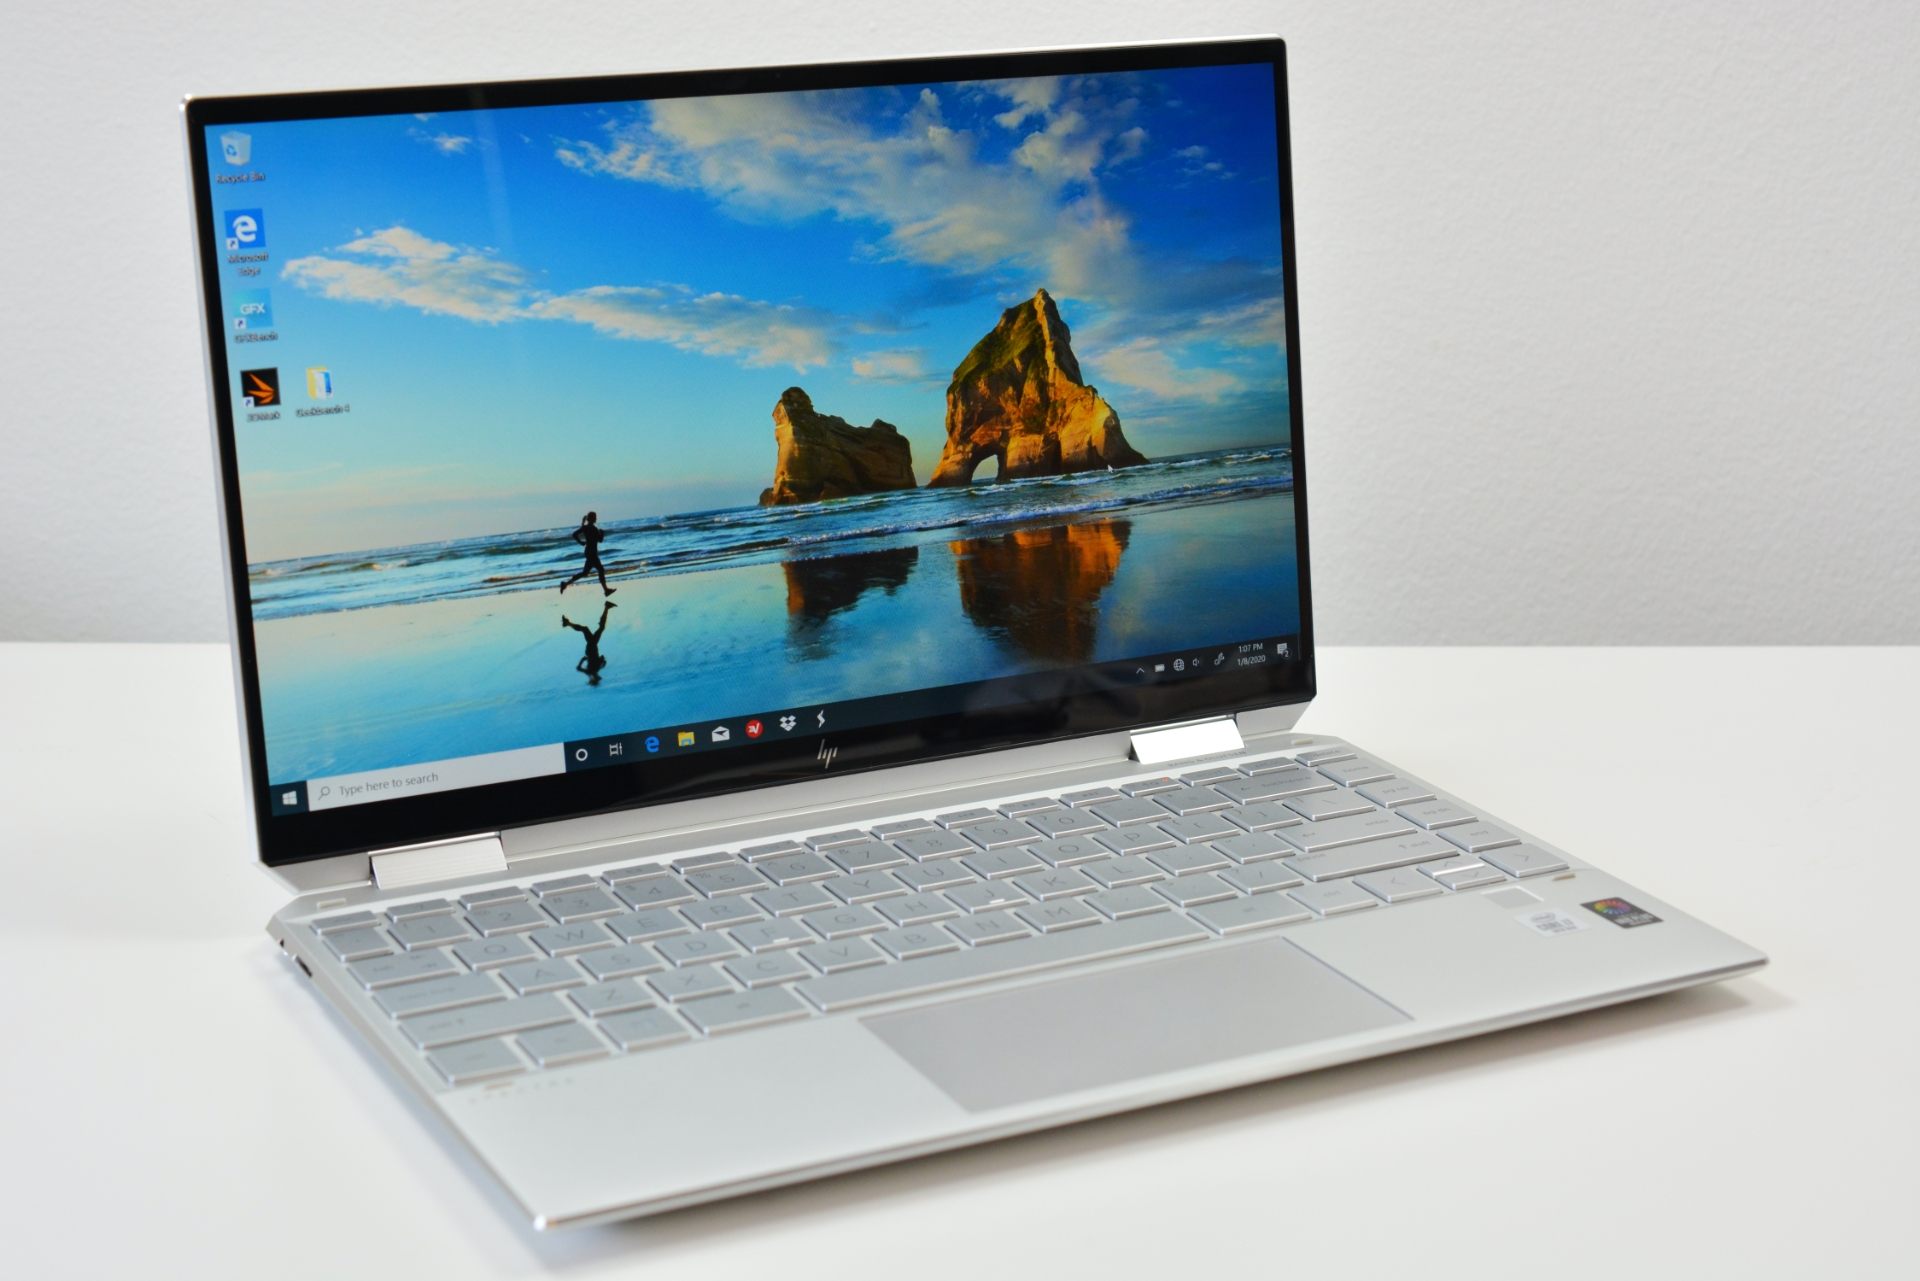 Hp Spectre X360 13 2019 Review A High End 2 In 1 Laptop That S Hard To Beat Ars Technica